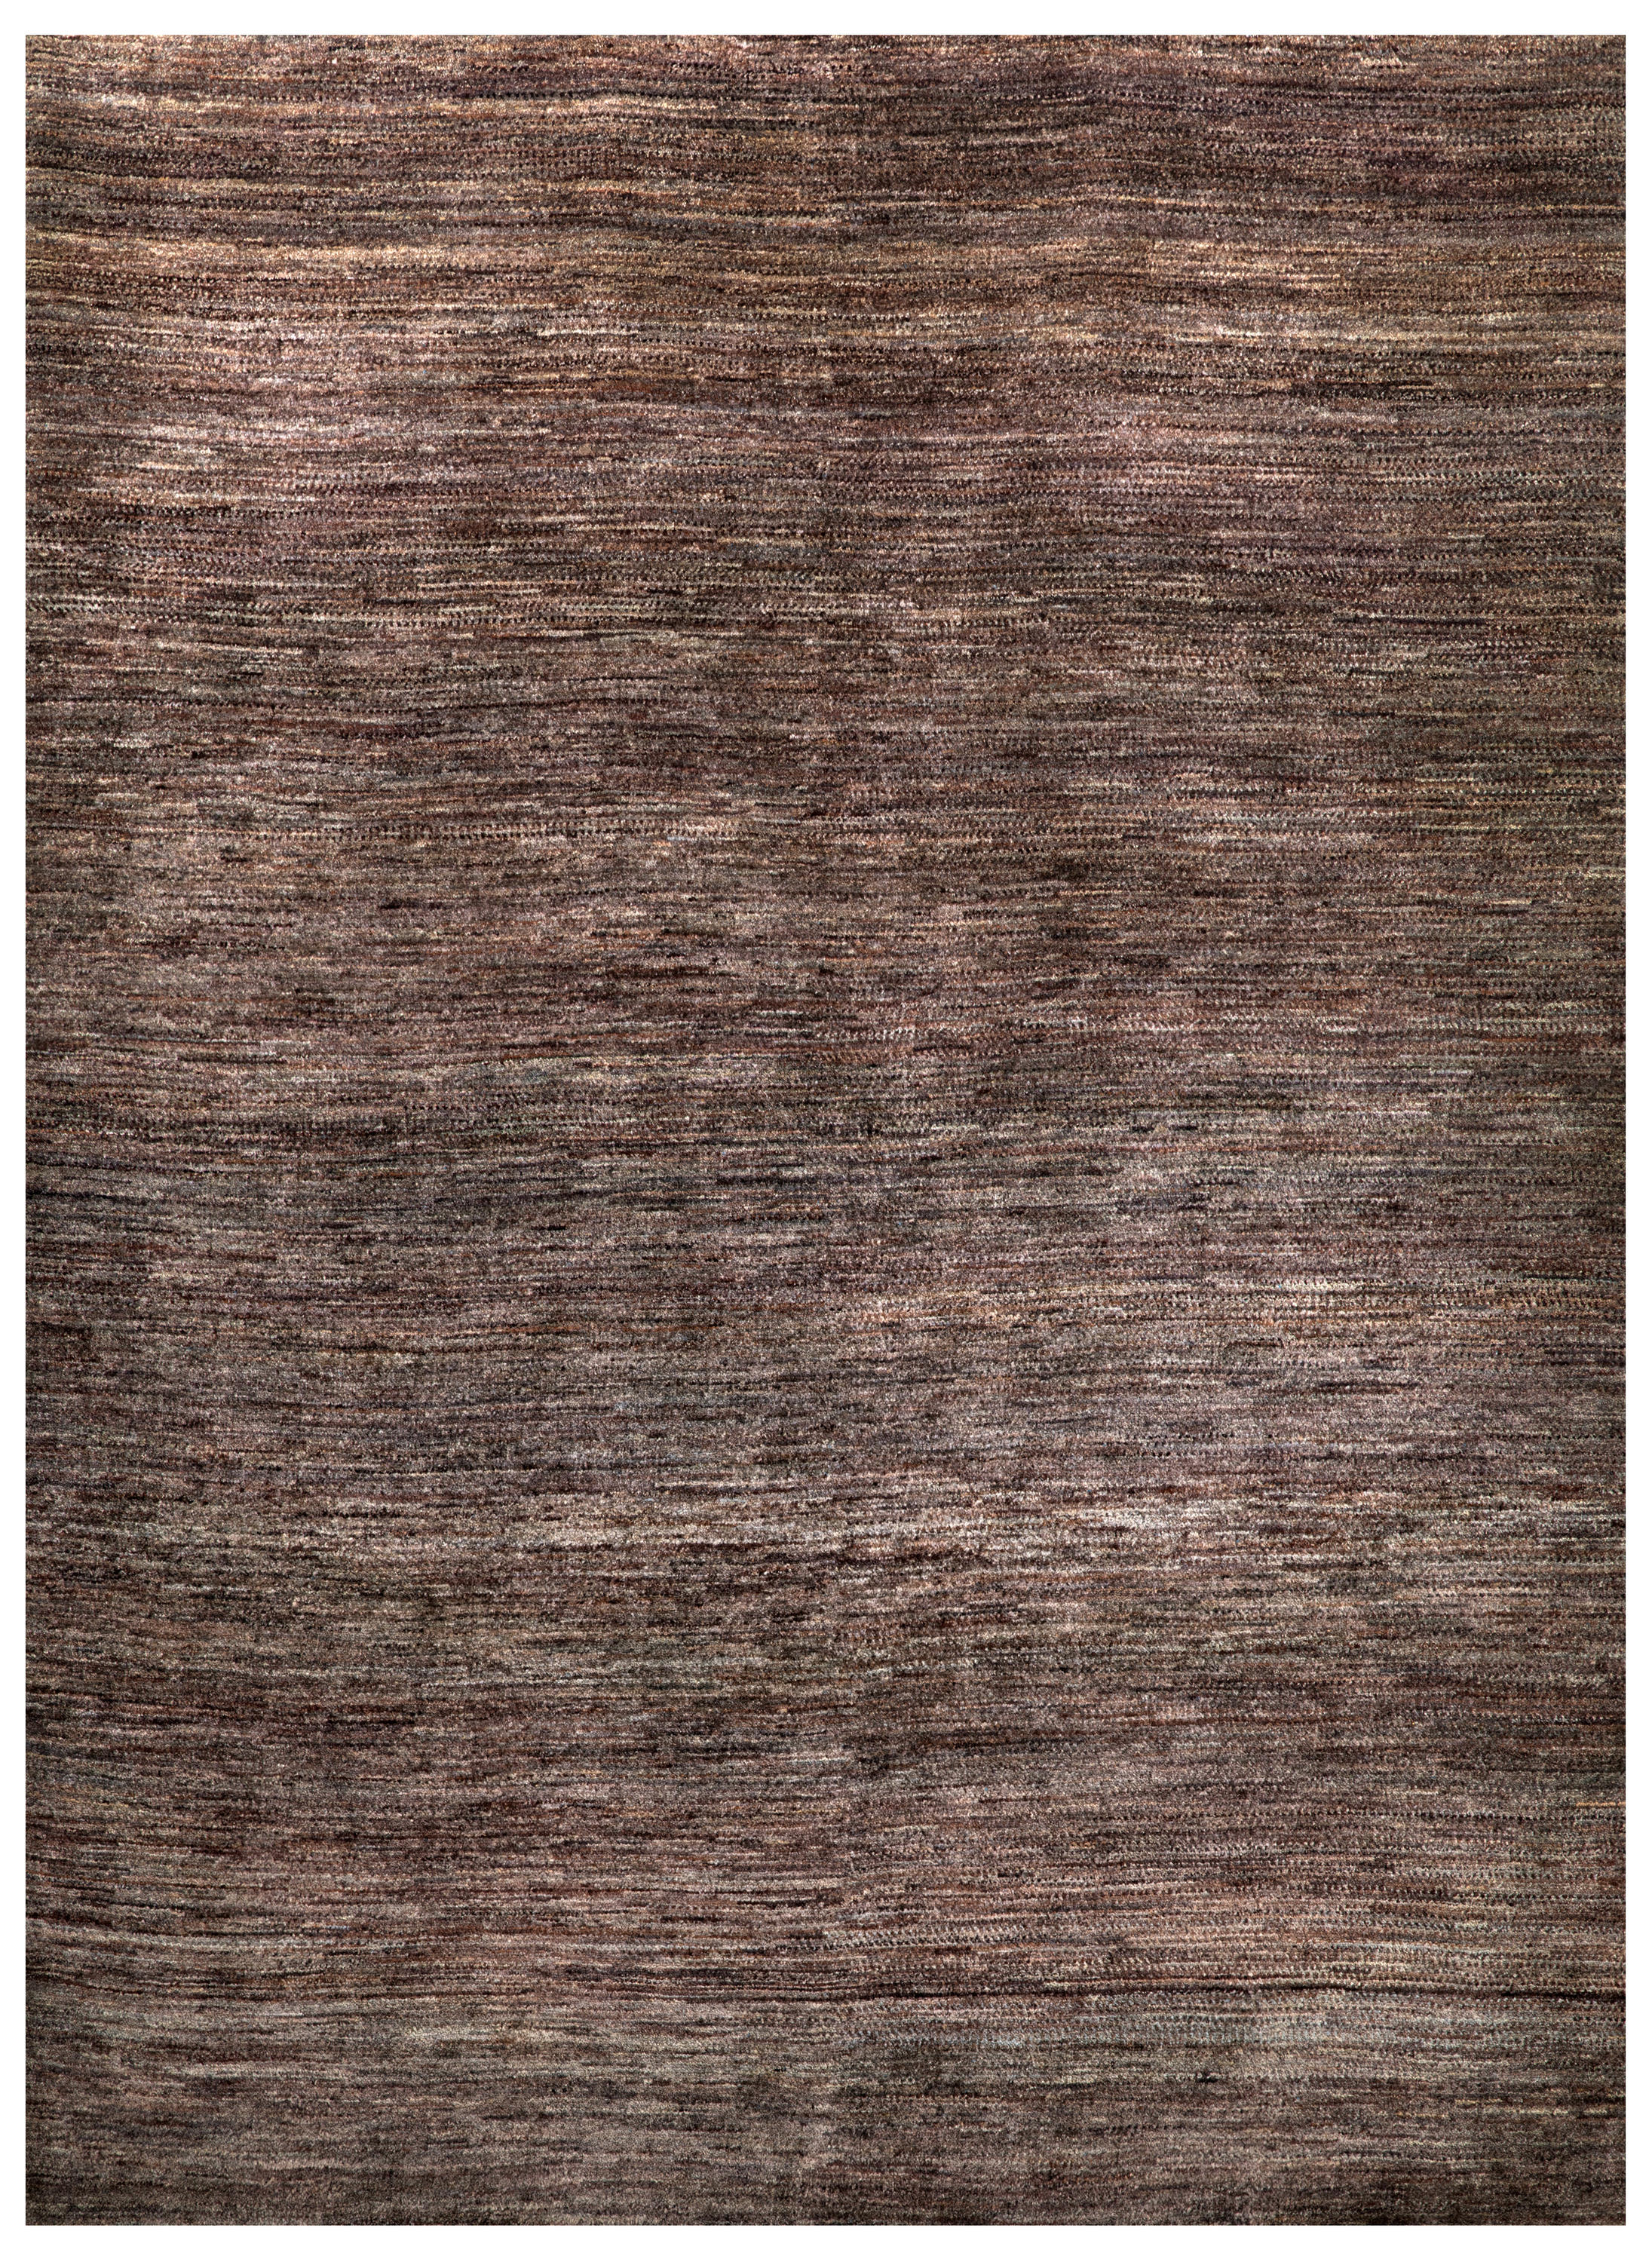 Gabbehs Abstract Amp Plain Abrash Natural Brown Rugs From